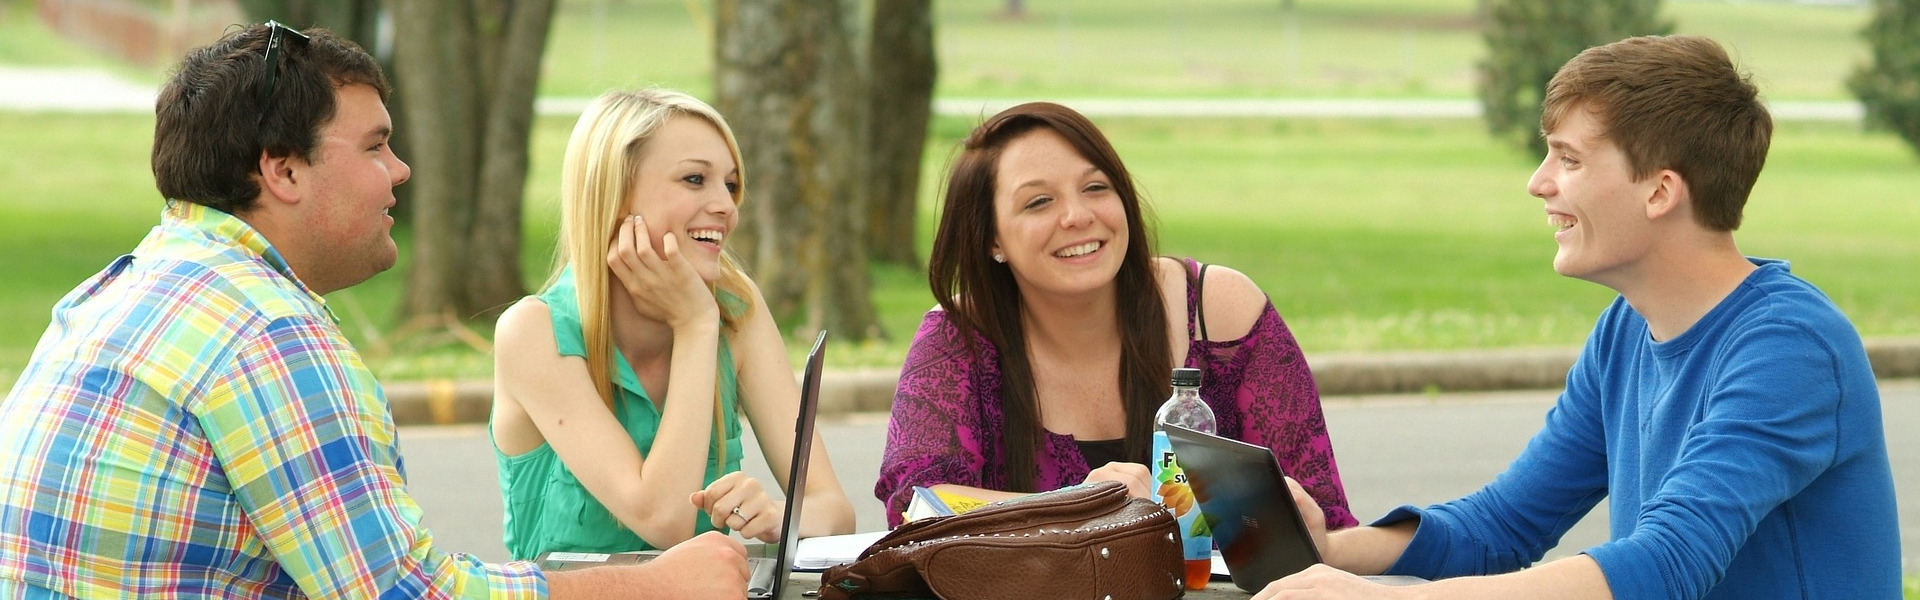 Students sitting at a table outside